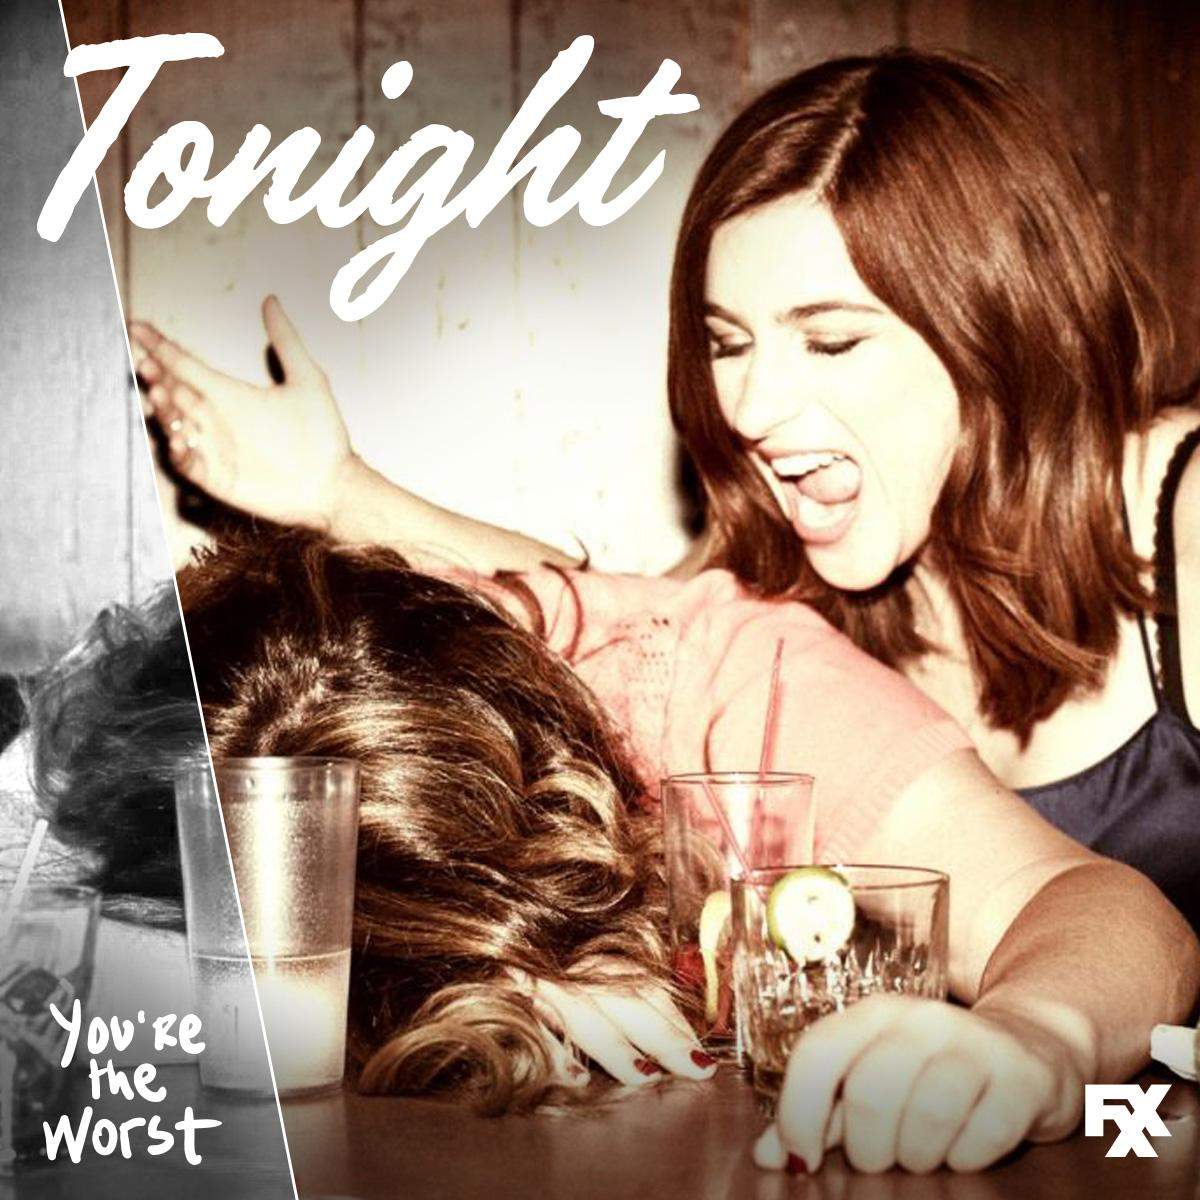 #YouretheWorst returns TONIGHT on @FXXNetwork. Who's going drink-for-drink with us #worsties?